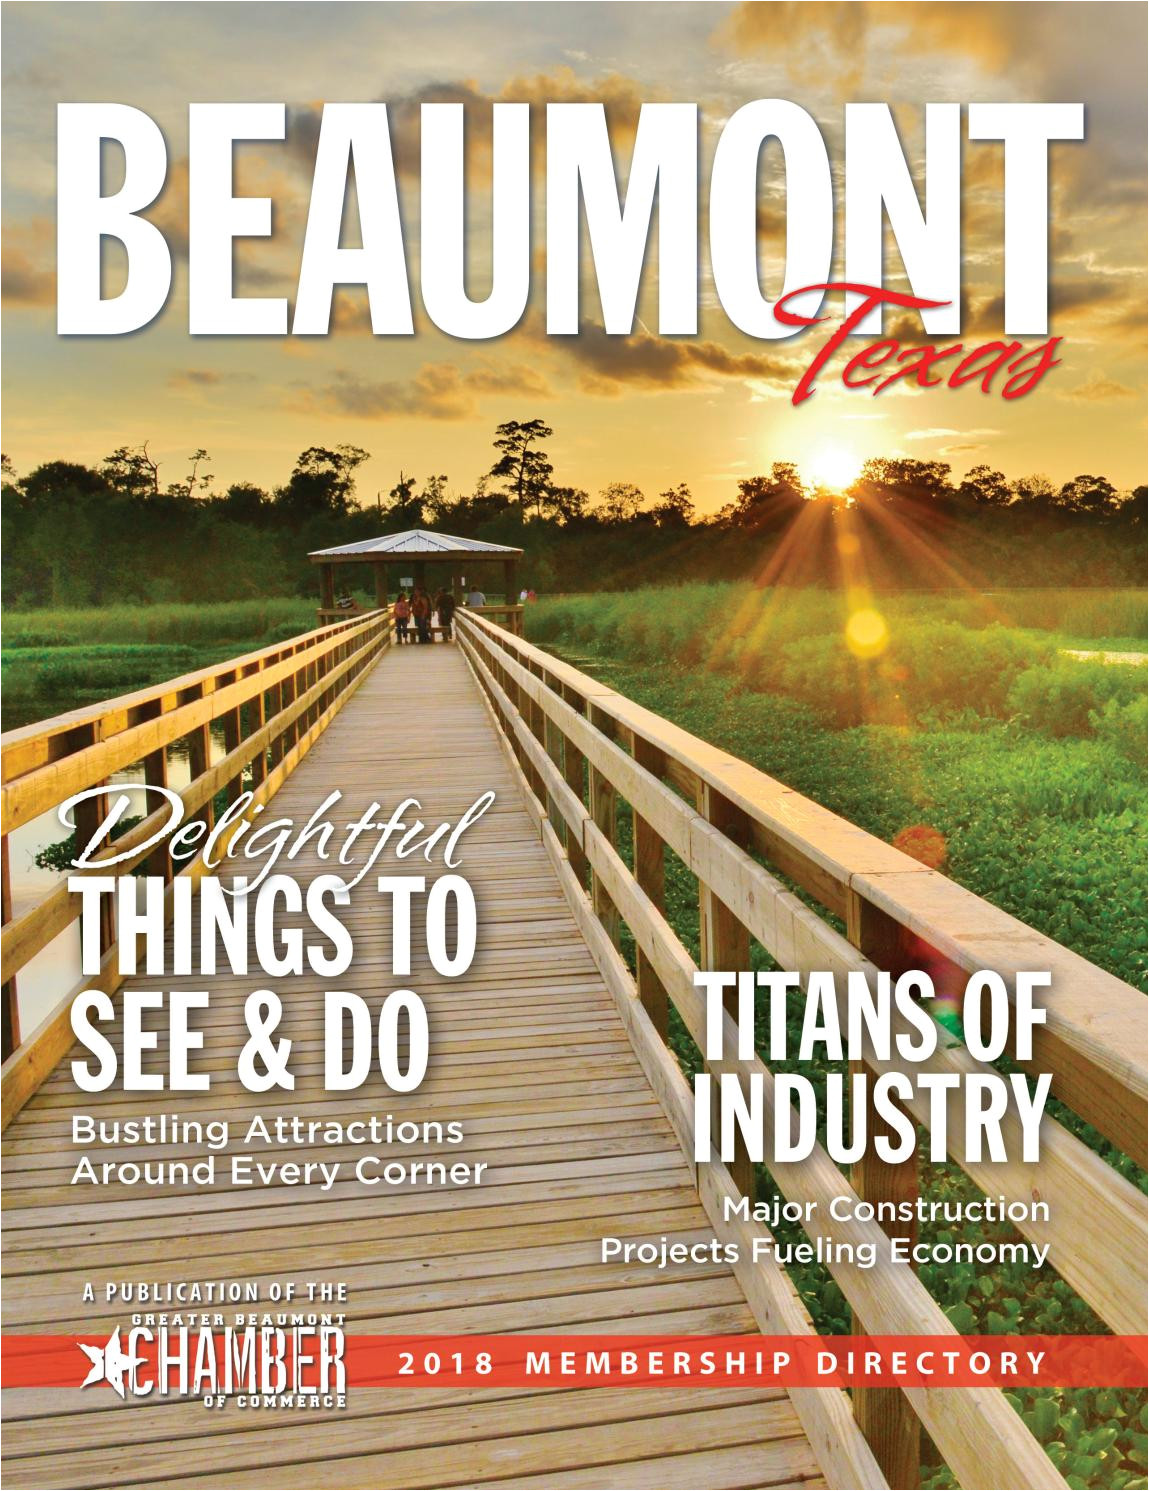 beaumont tx 2018 membership directory by town square publications llc issuu